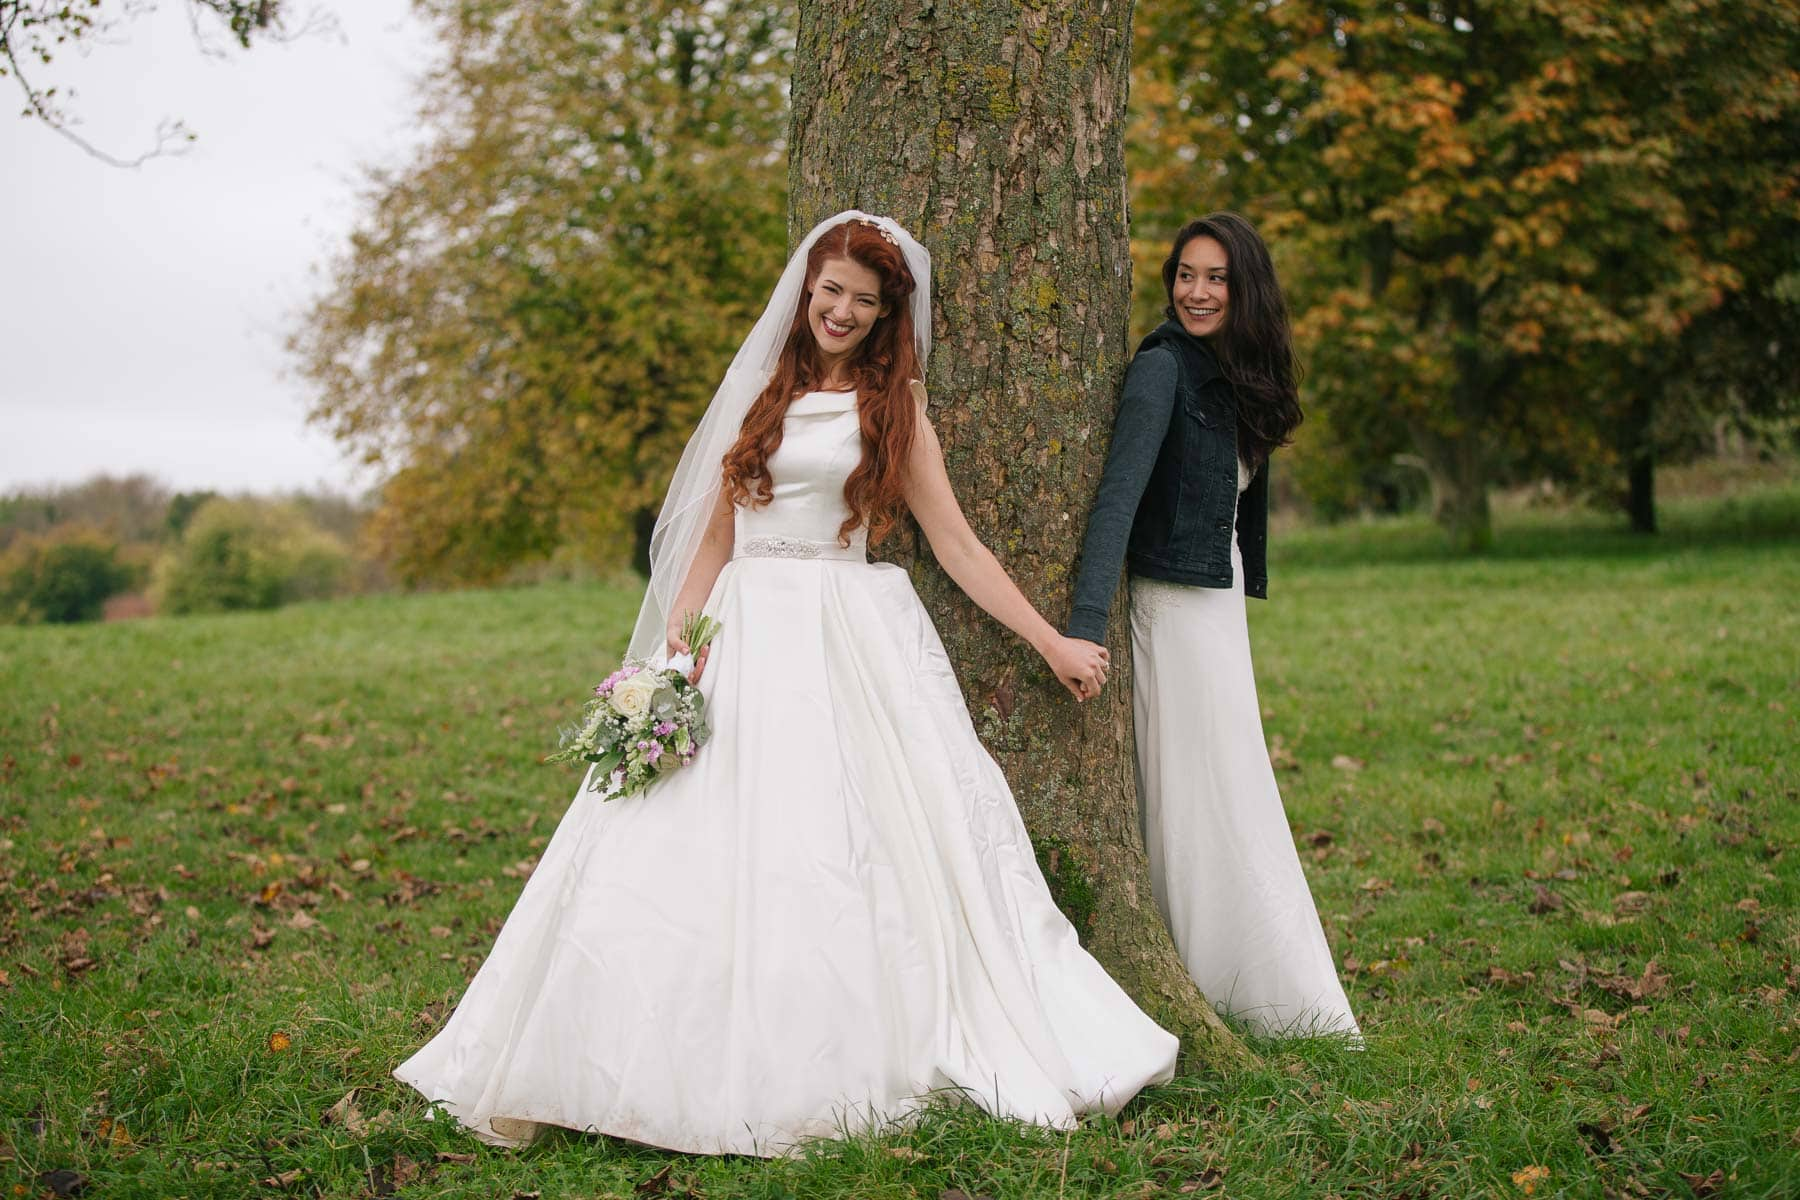 Same-sex couple Jessica and Claudia hold hands and lean against a tree